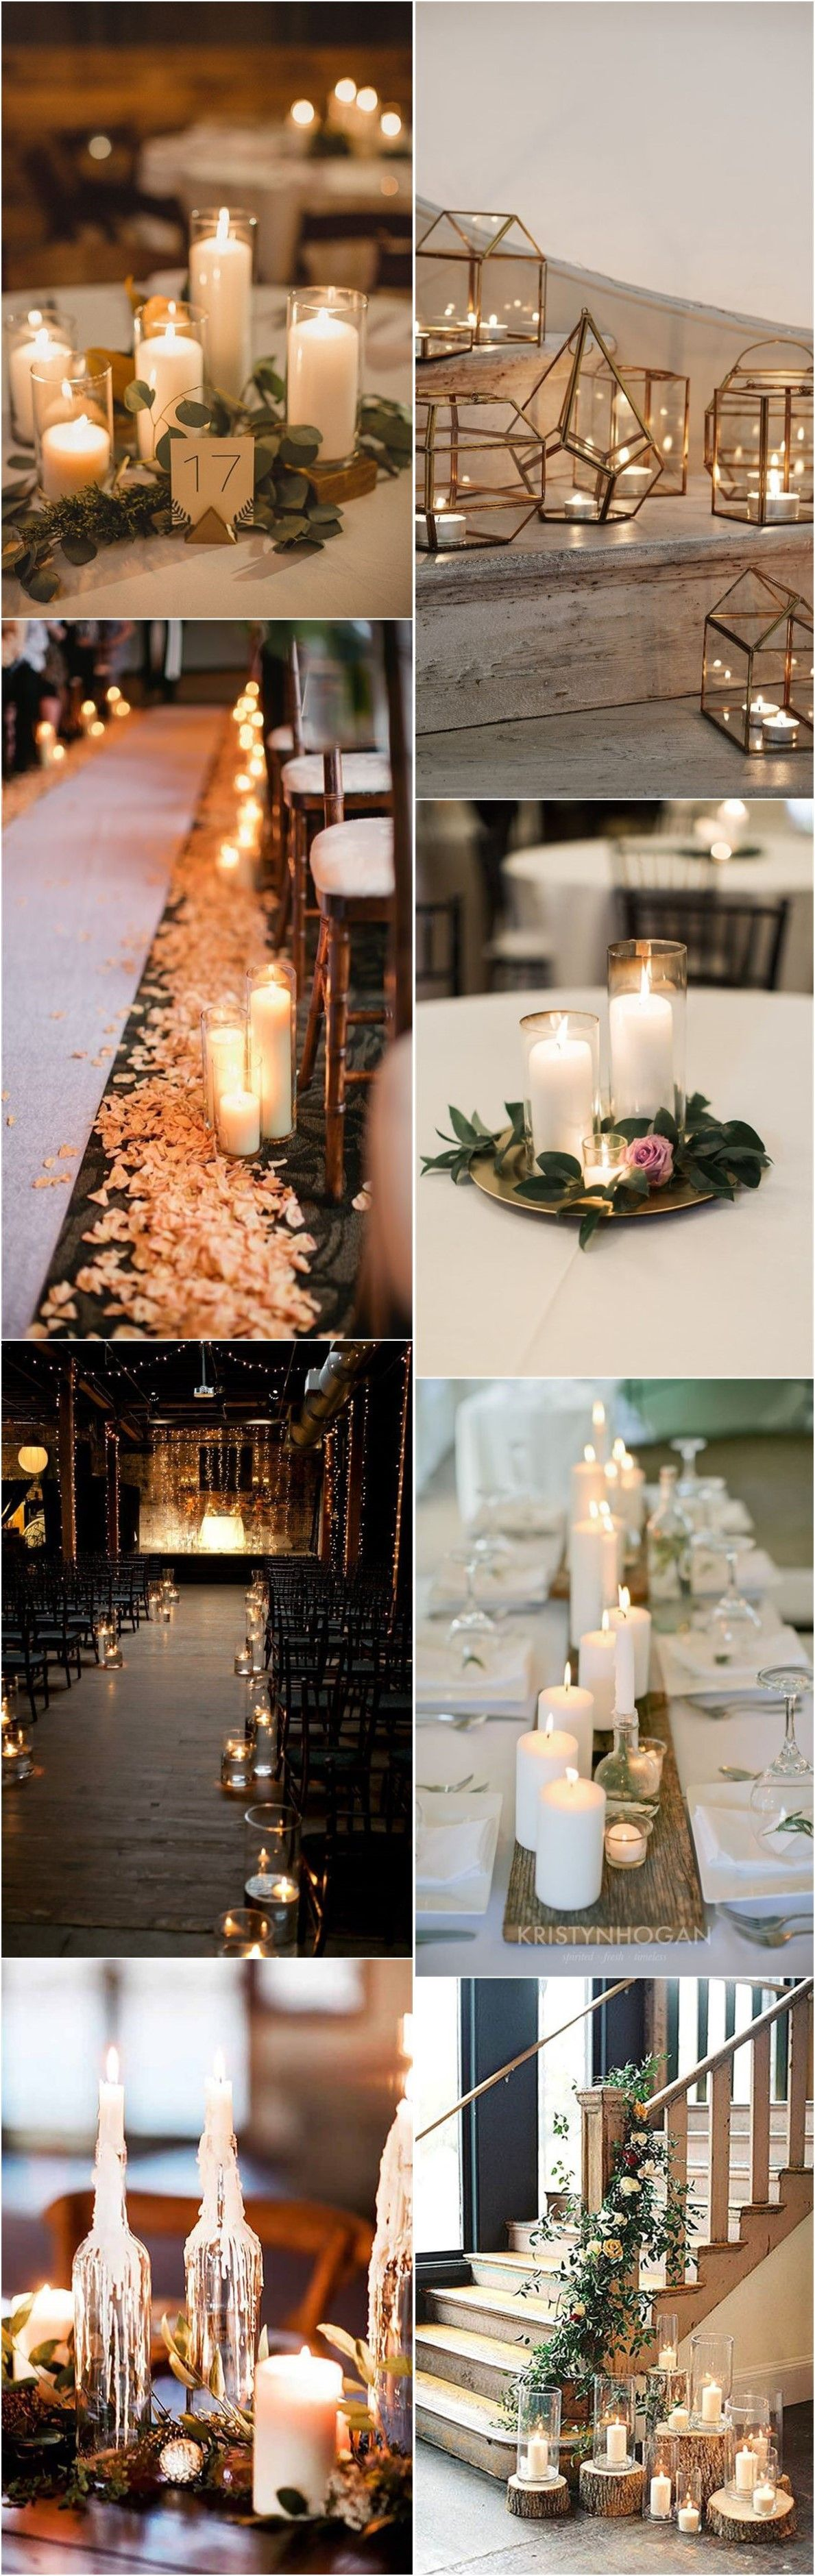 Love Wedding Decorations 20 Stuning Wedding Candlelight Decoration Ideas You Will Love